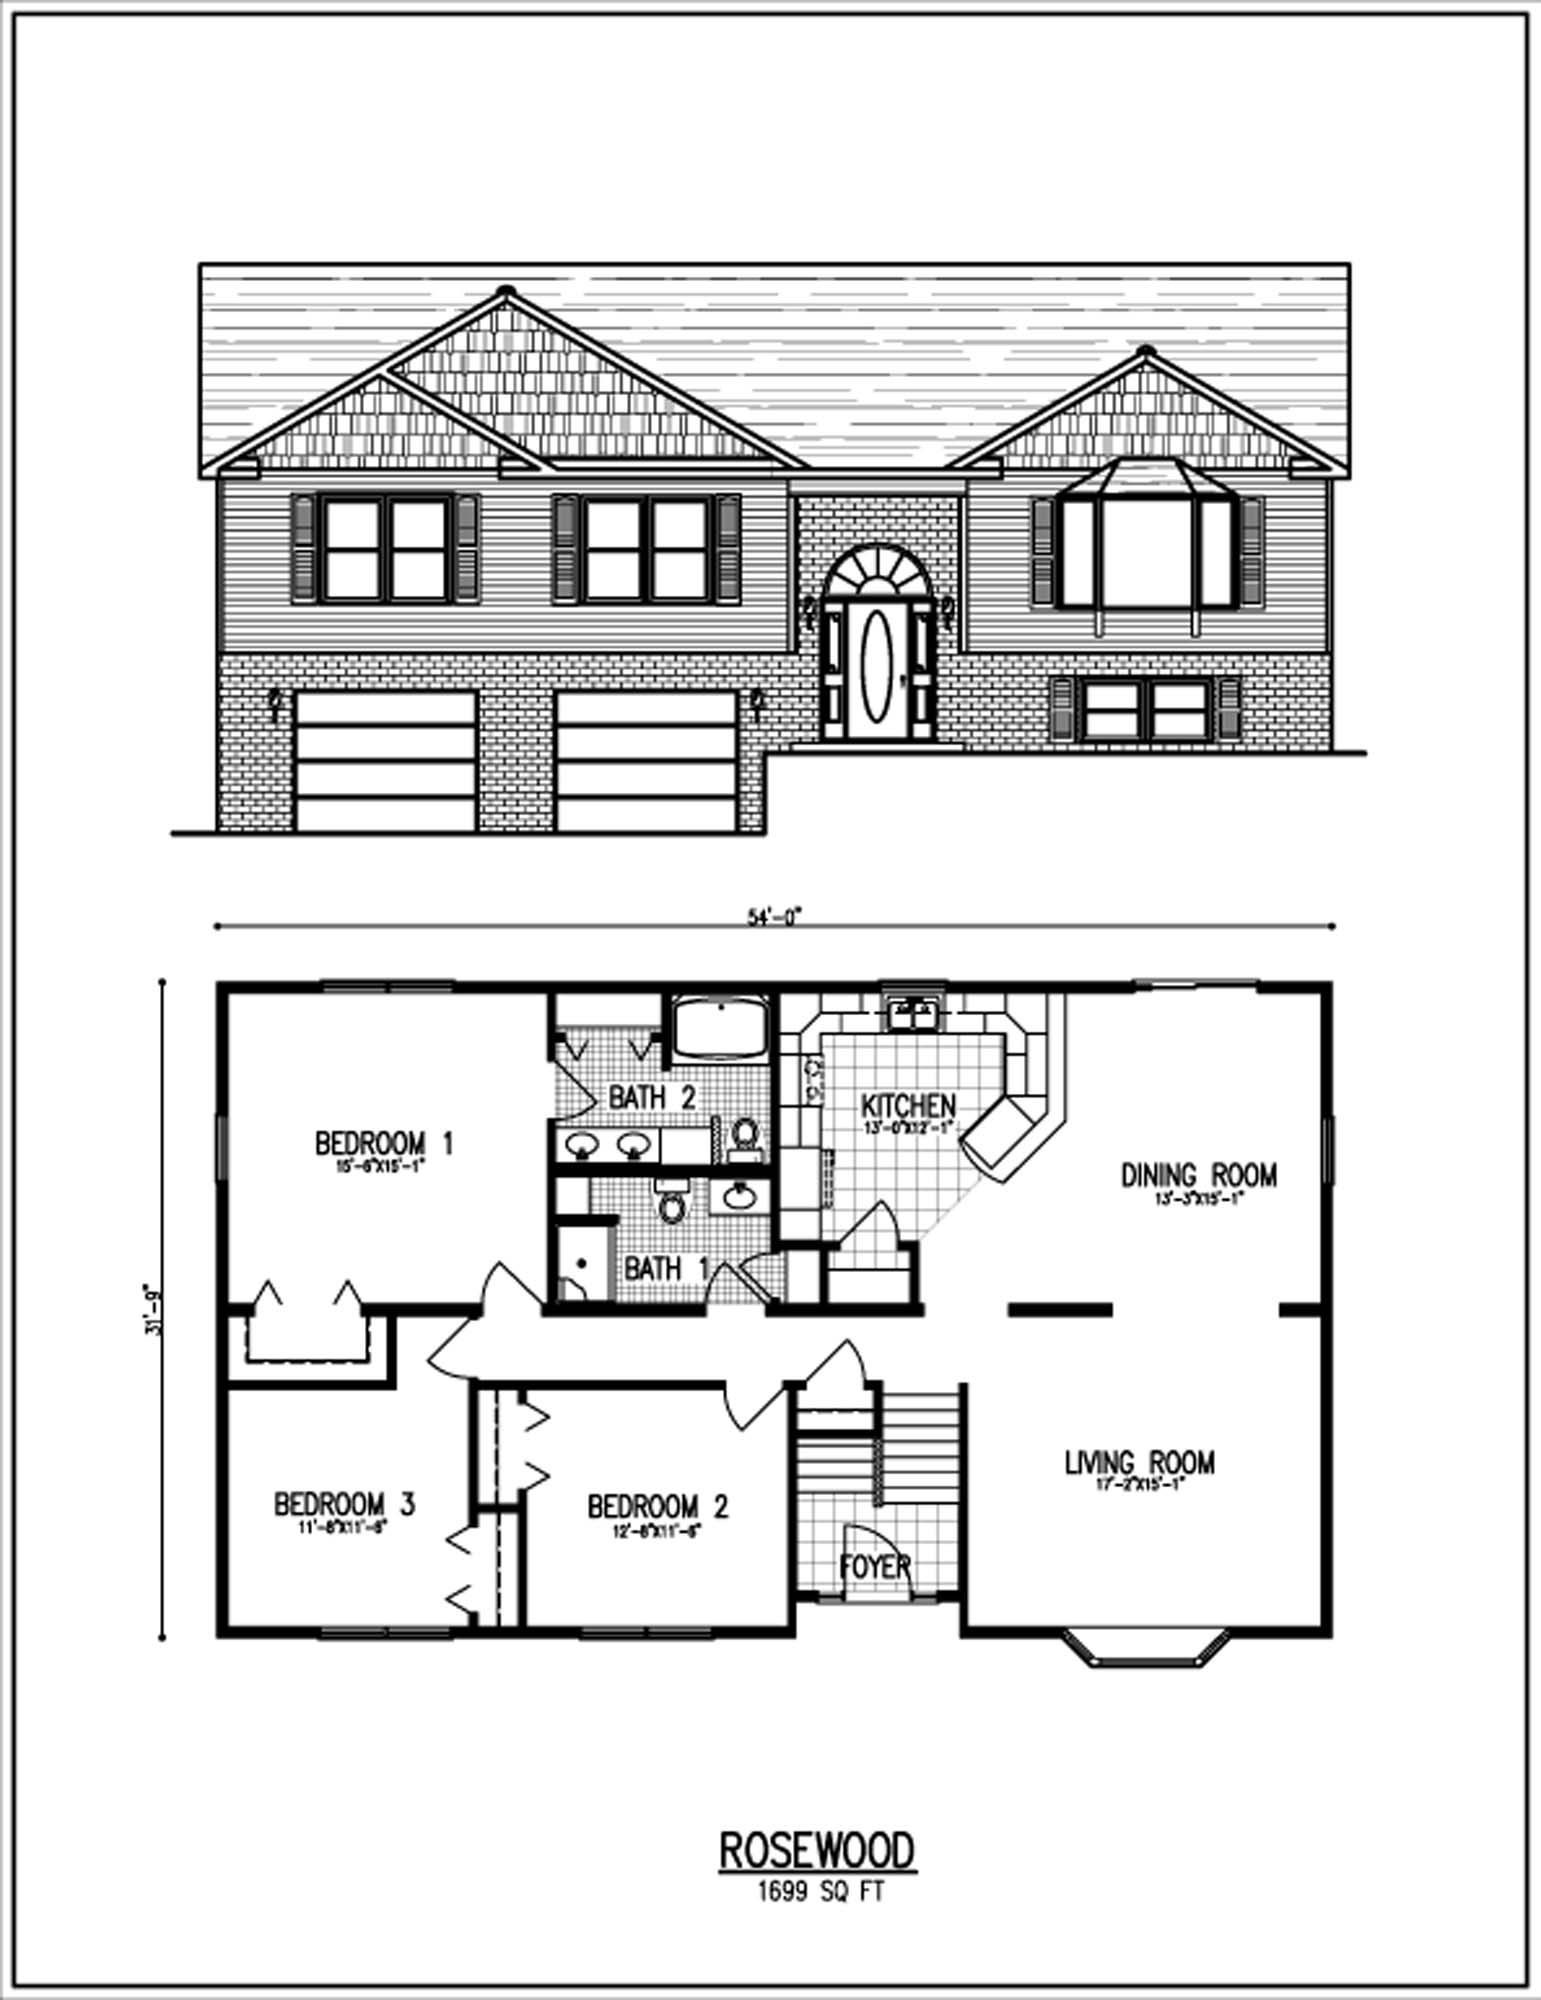 Raised ranch house plans raised ranch house plans raised for Large ranch floor plans